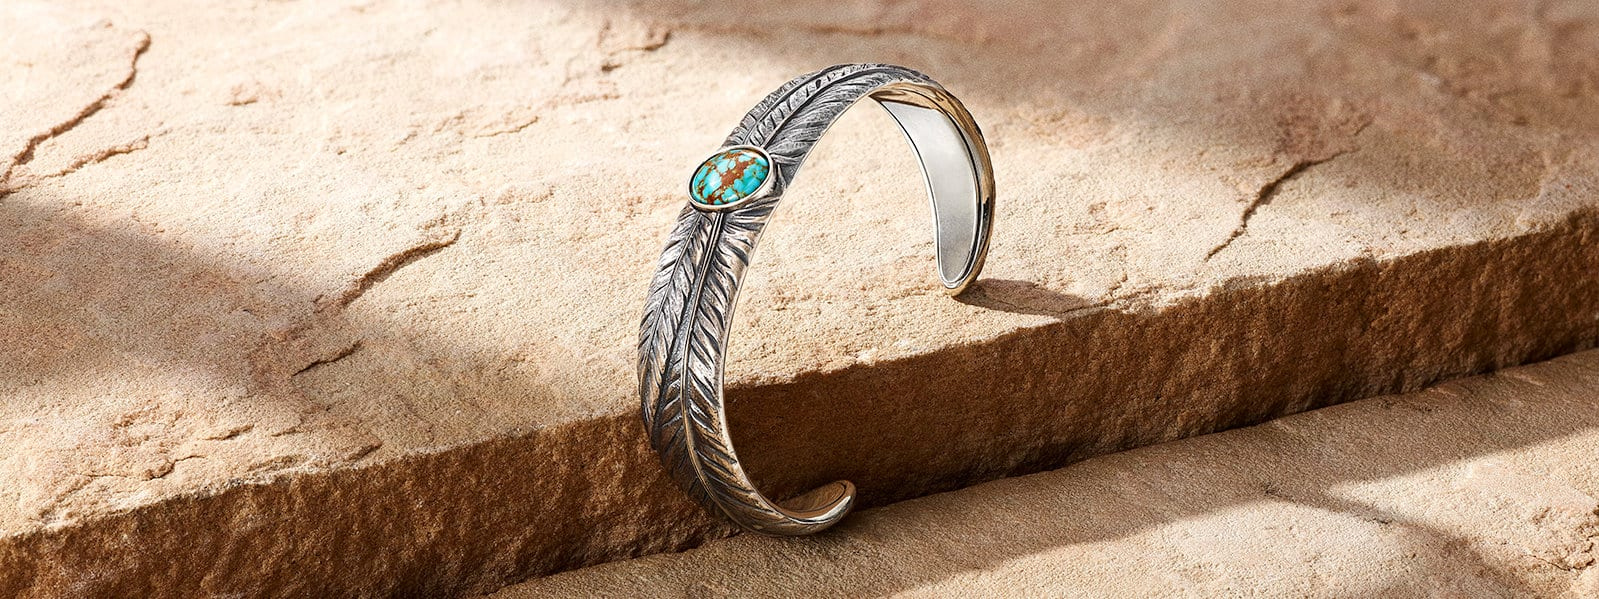 Southwest feather cuff bracelet in sterling silver with turquoise on warm-hued stone.